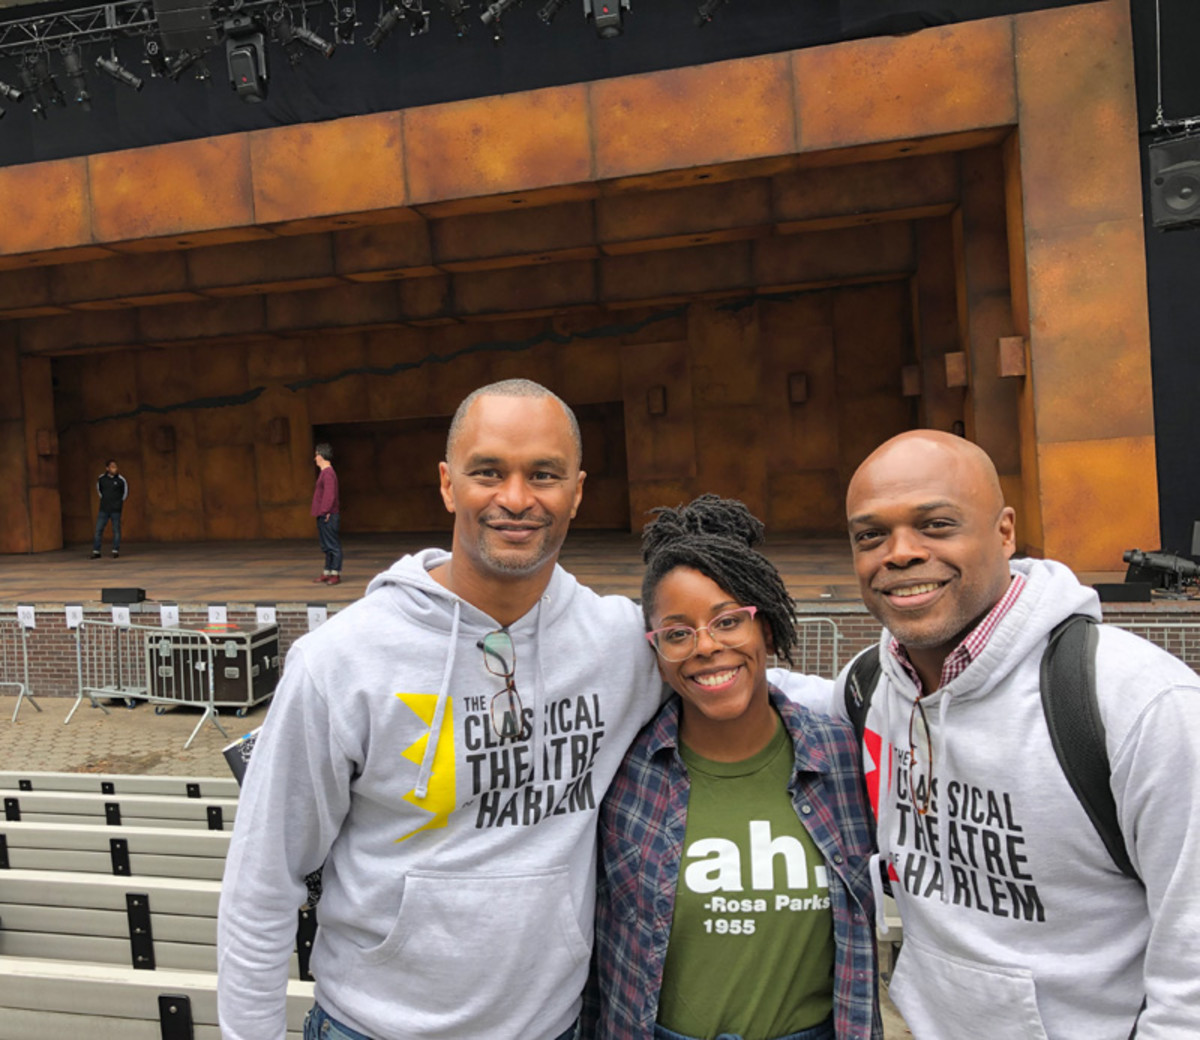 The Classical Theatre of Harlem's Seize the King cast